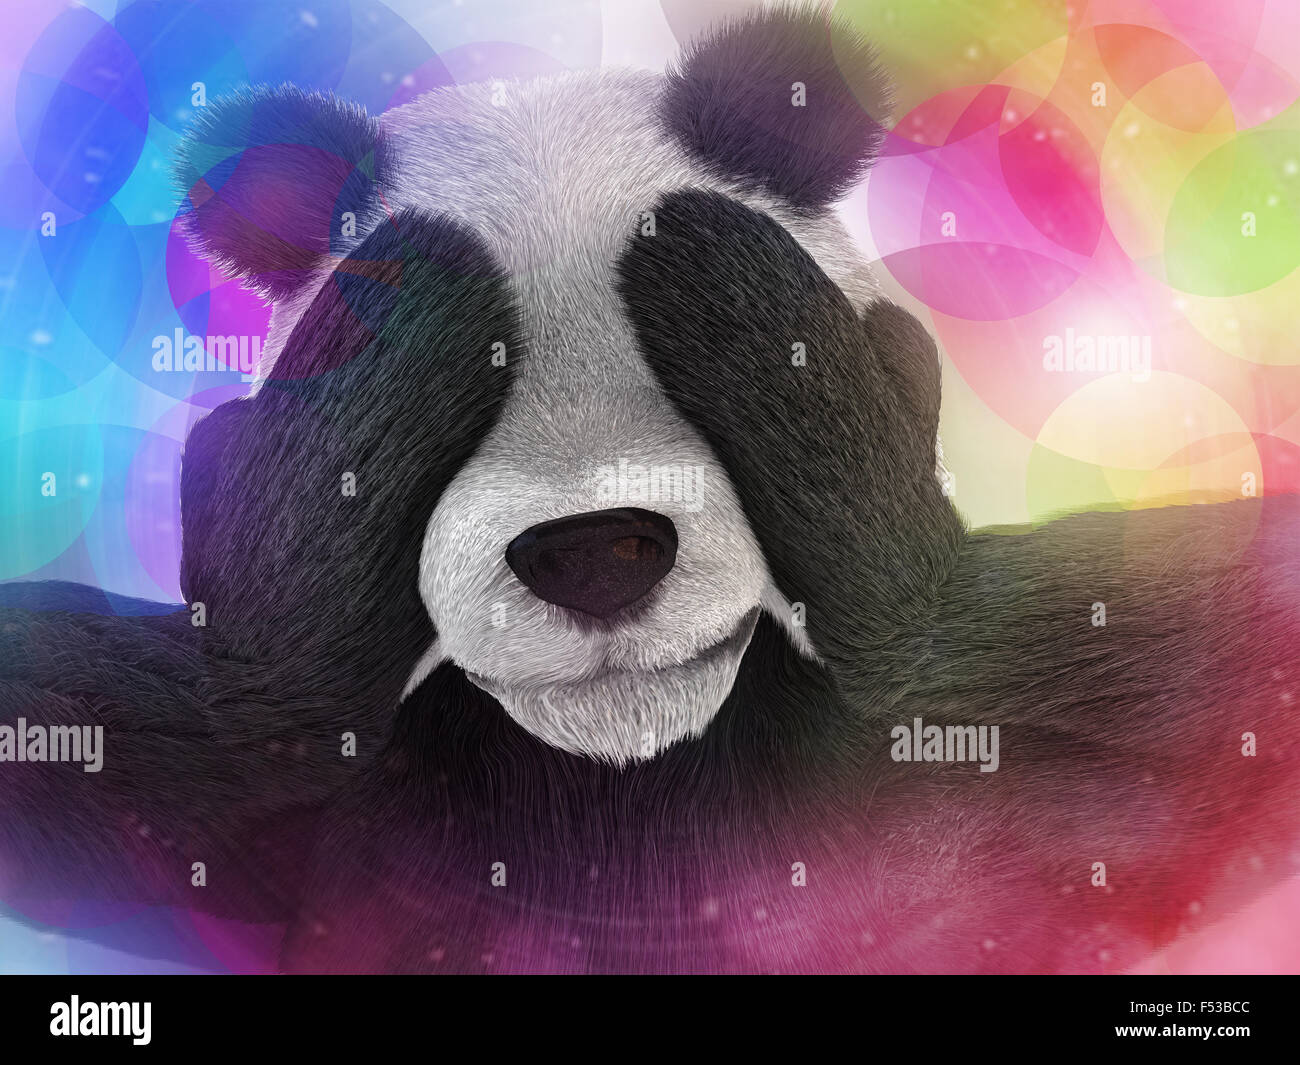 sick character panda bamboo junkie experiencing strong hallucinations and fear closes the muzzle paws. Psychedelic - Stock Image